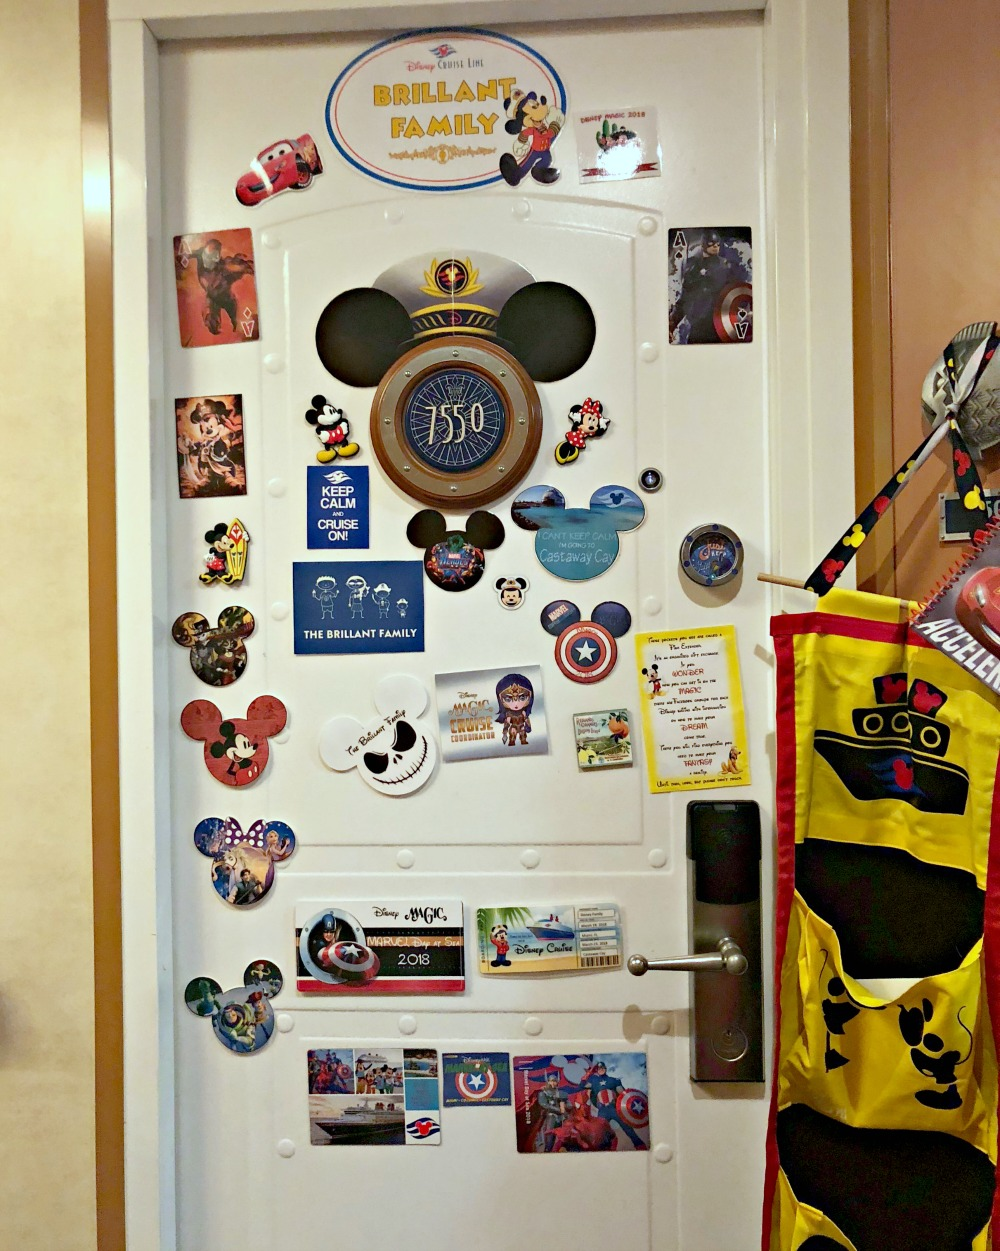 How to decorate your door and fish extender for a Disney Cruise // 20 Things You Need to Know Before your Disney Cruise